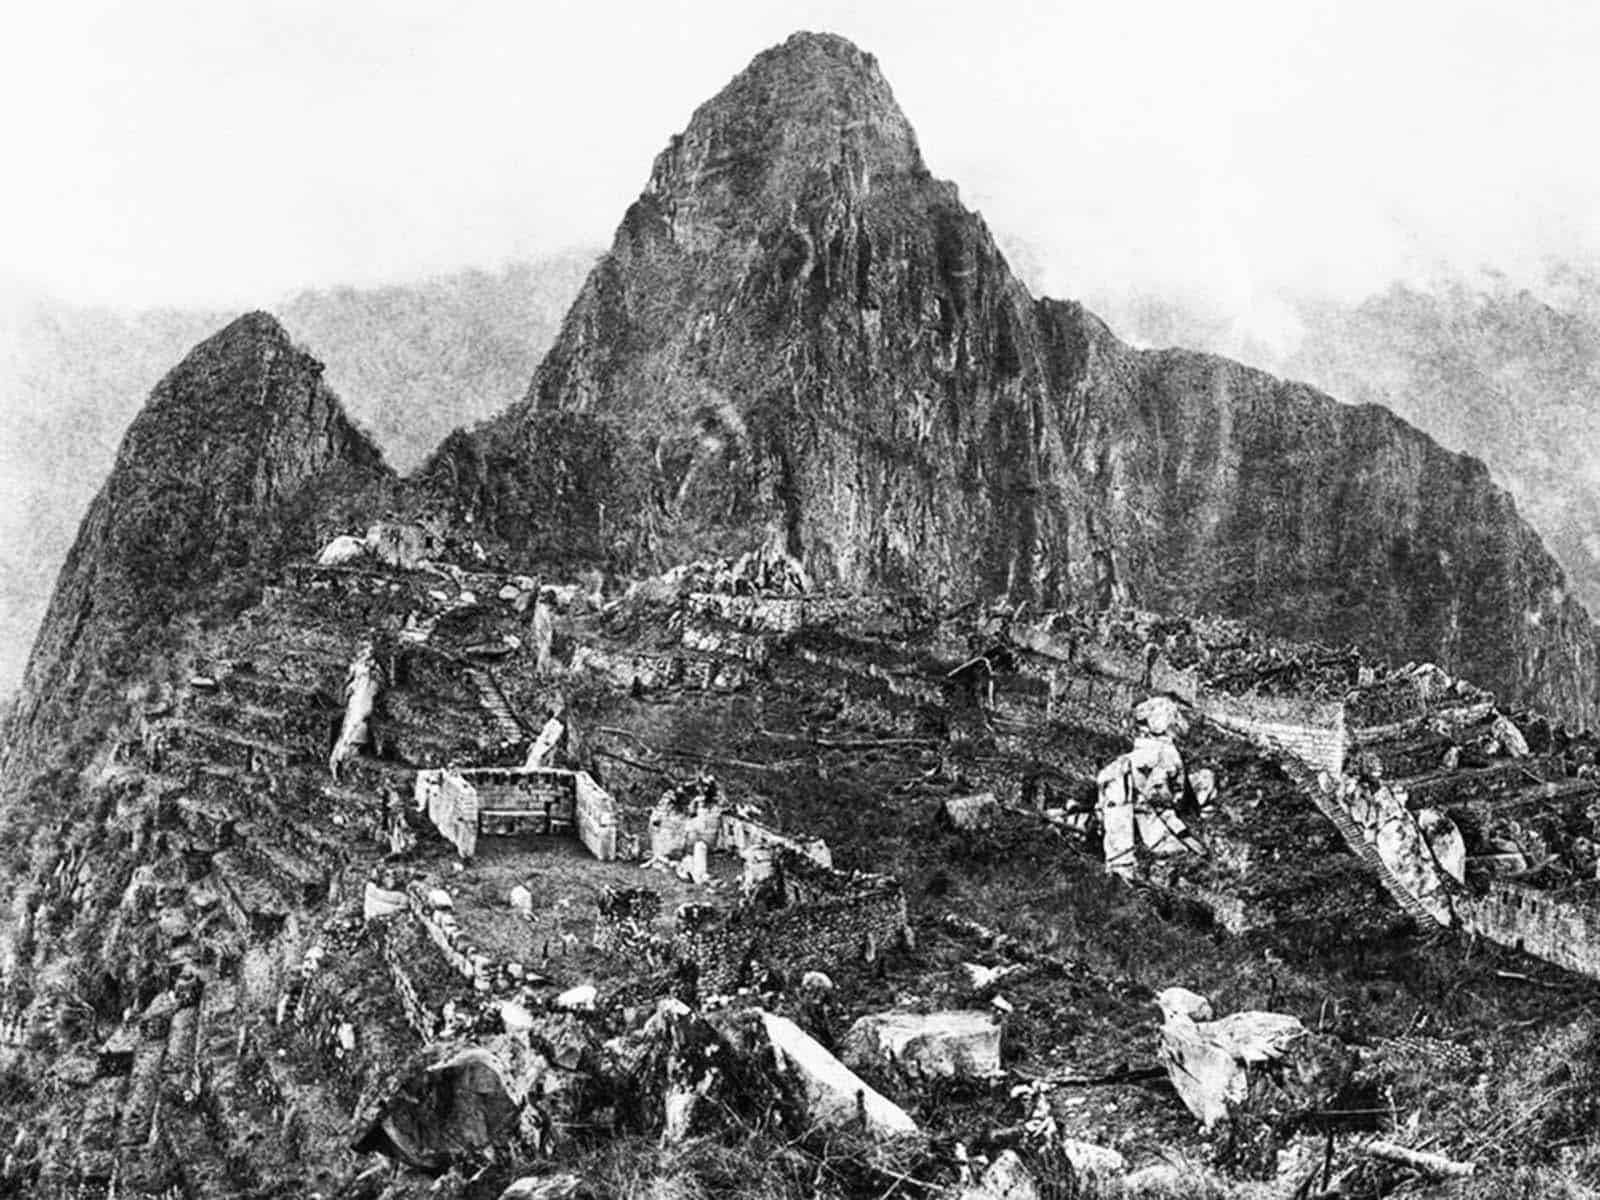 First Photograph of the Machu Picchu